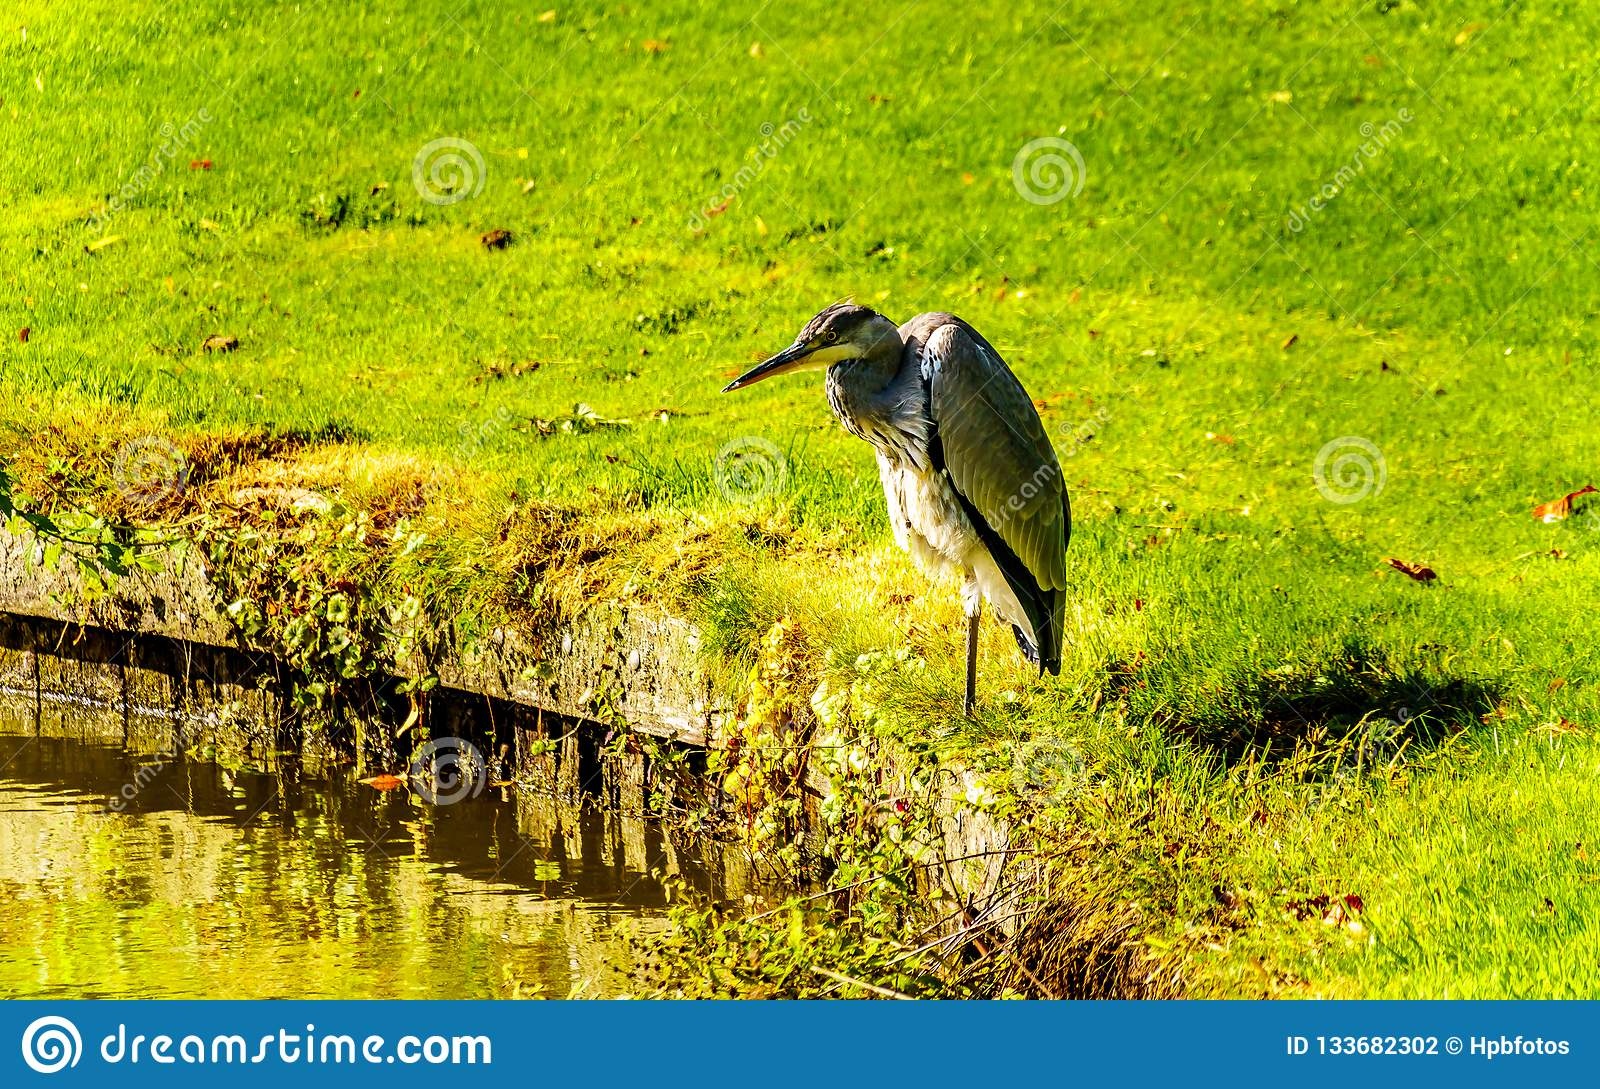 Heron standing at the edge of a Pond